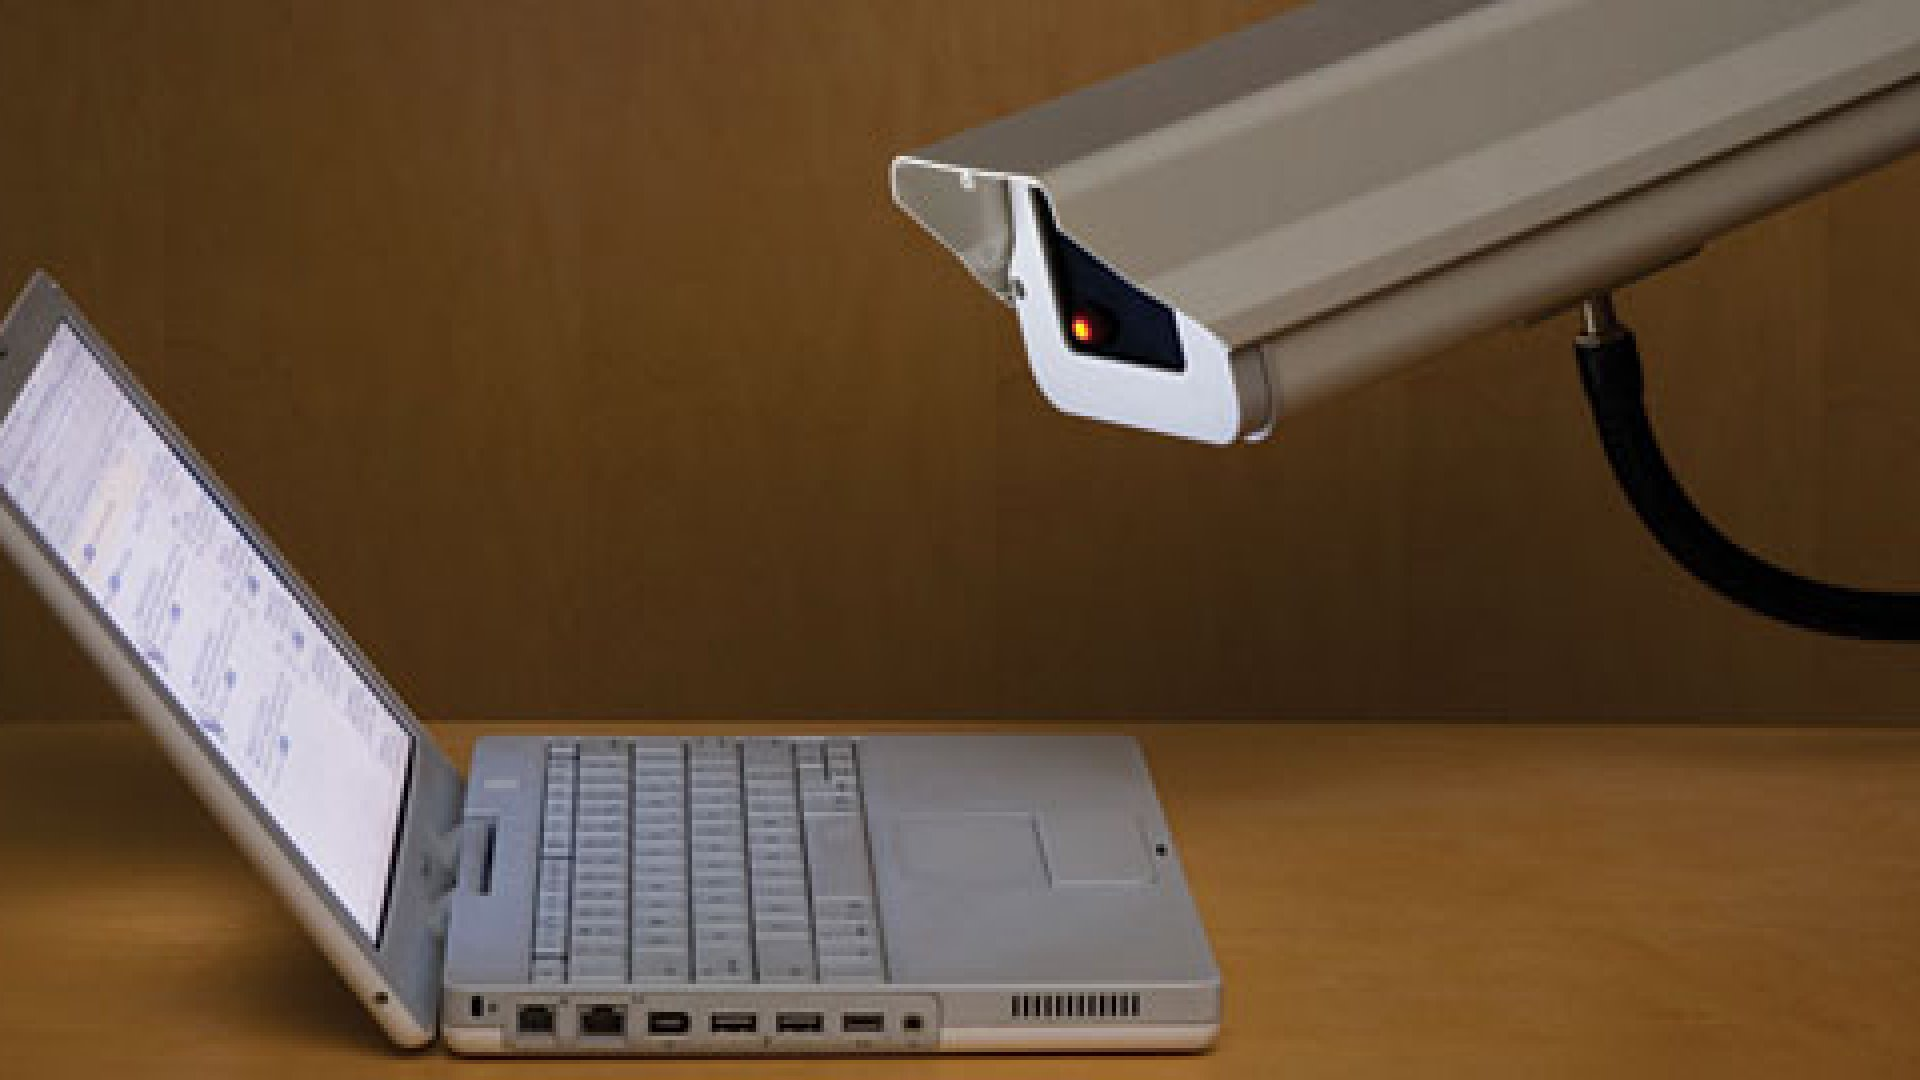 United States has a relatively laissez-faire attitude toward online privacy compared to much of the rest of the developed world.